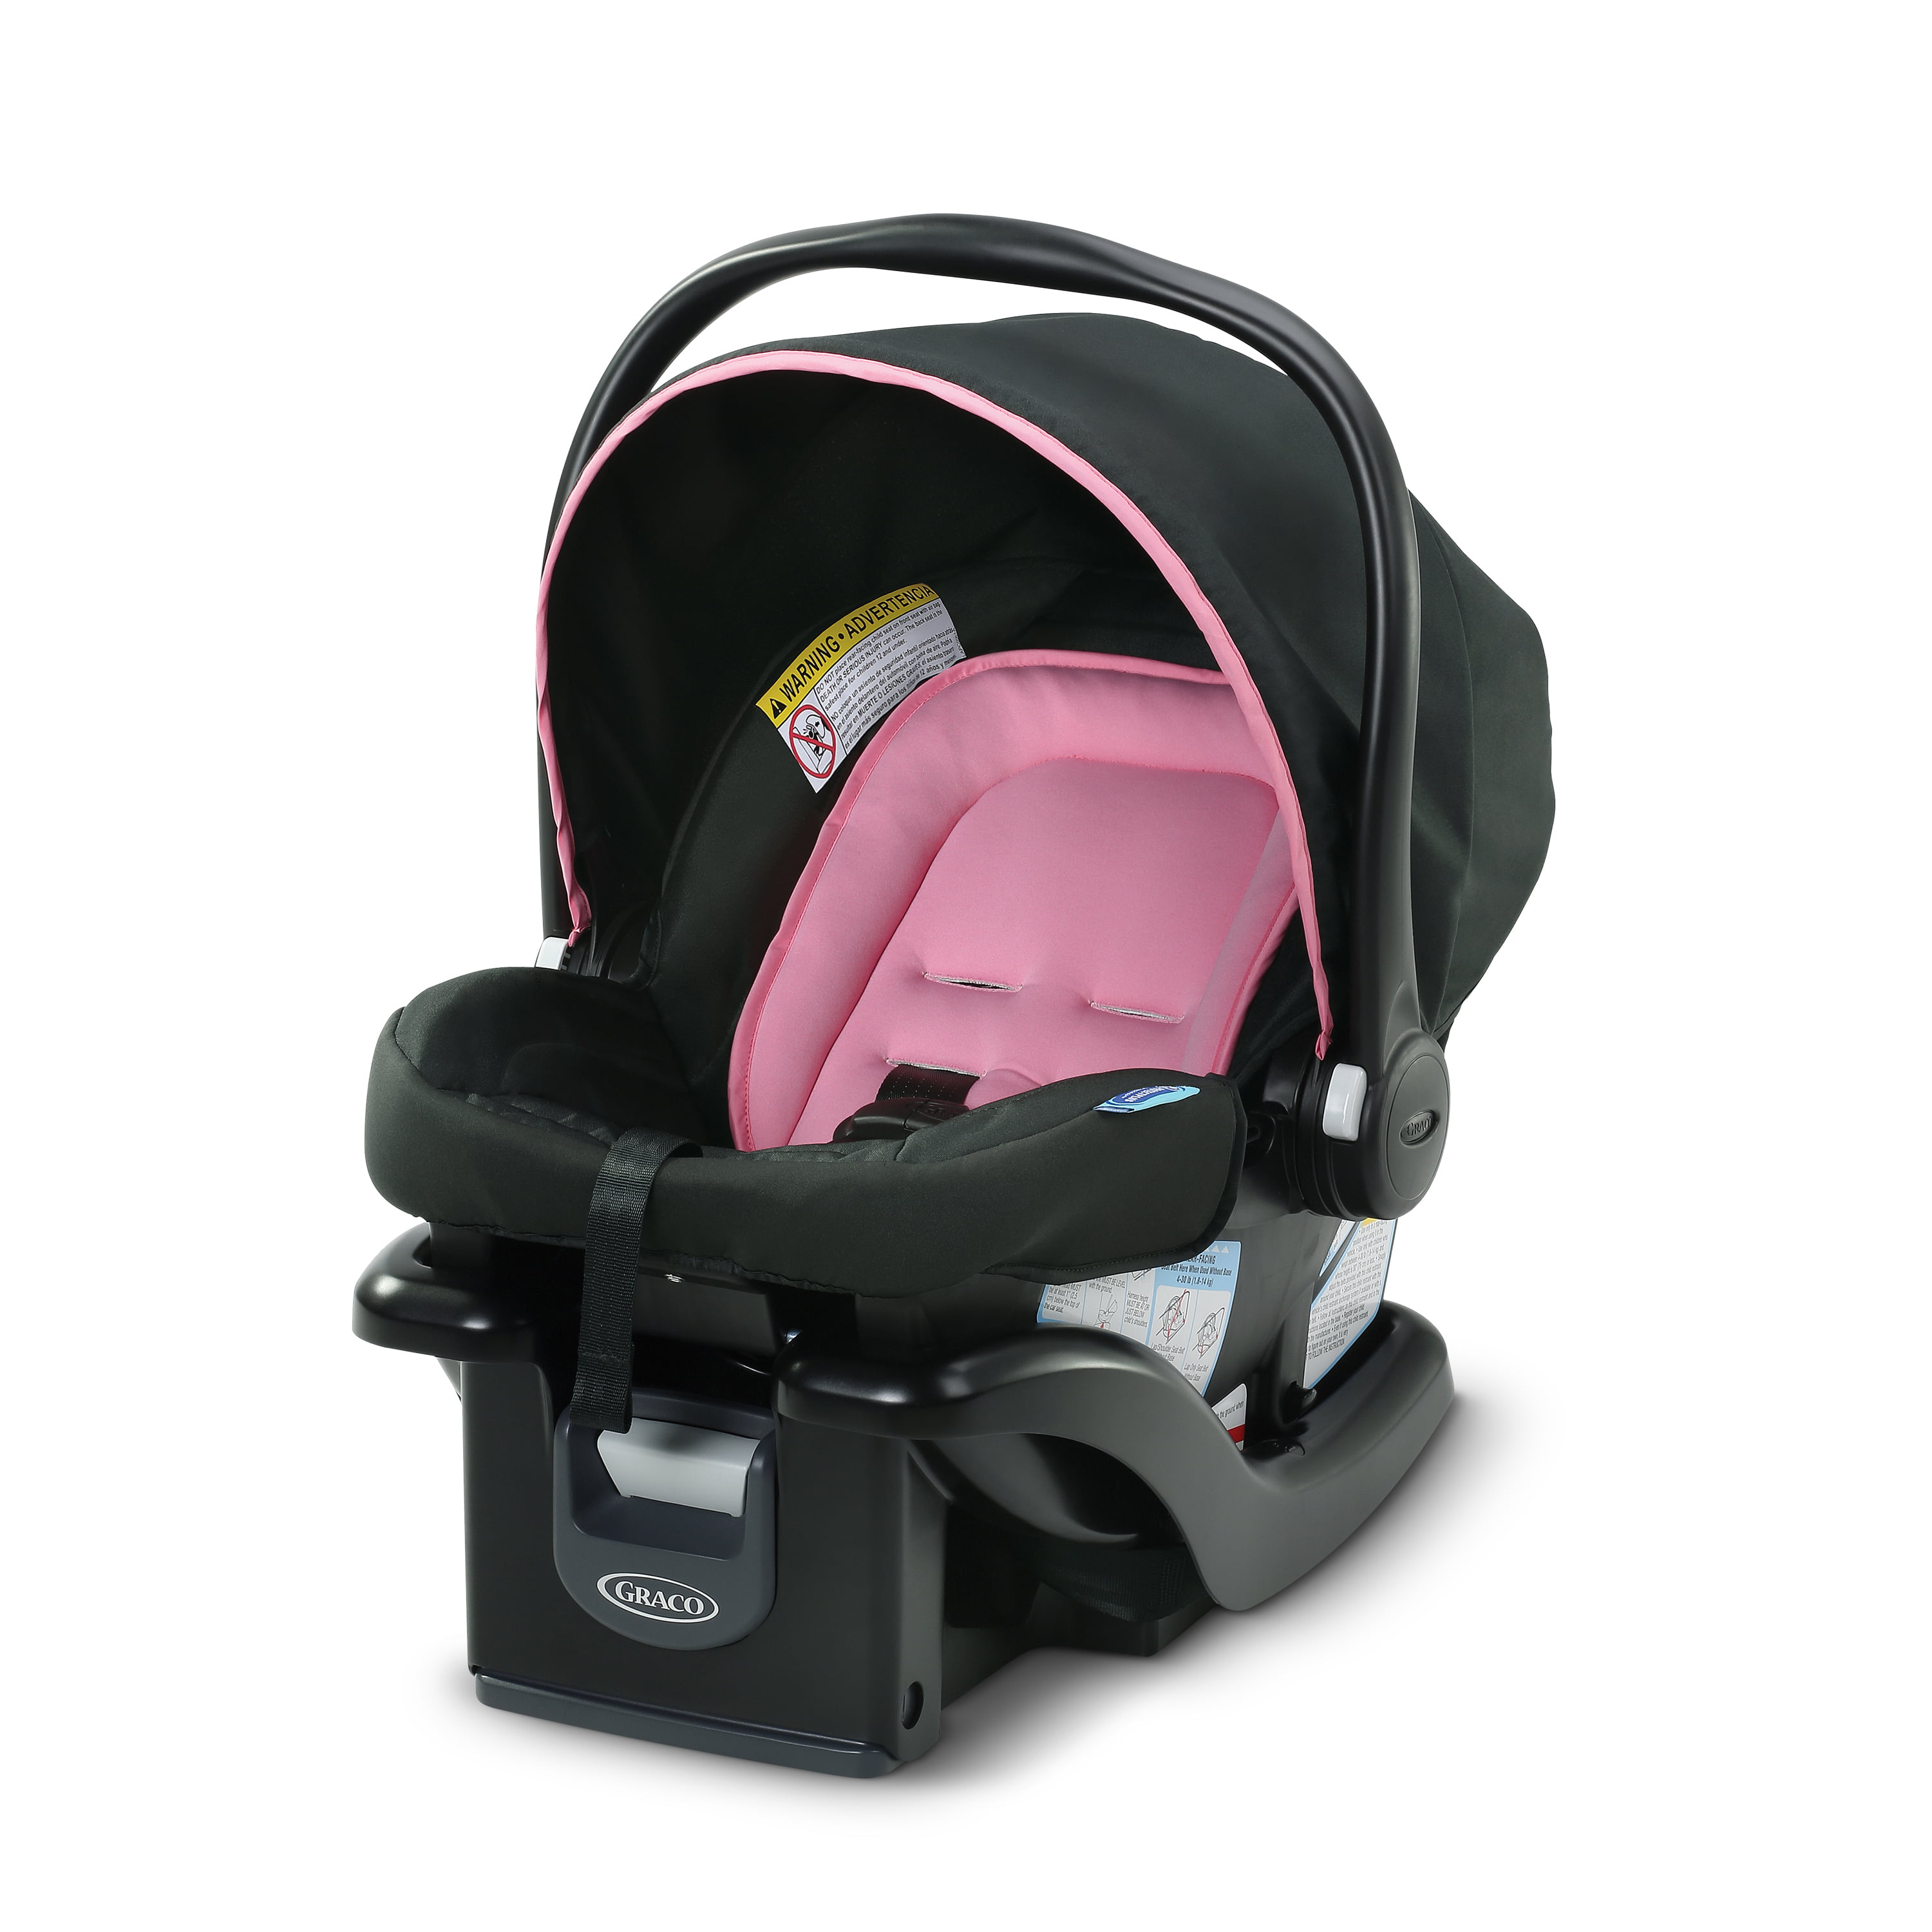 What's the lightest infant car seat